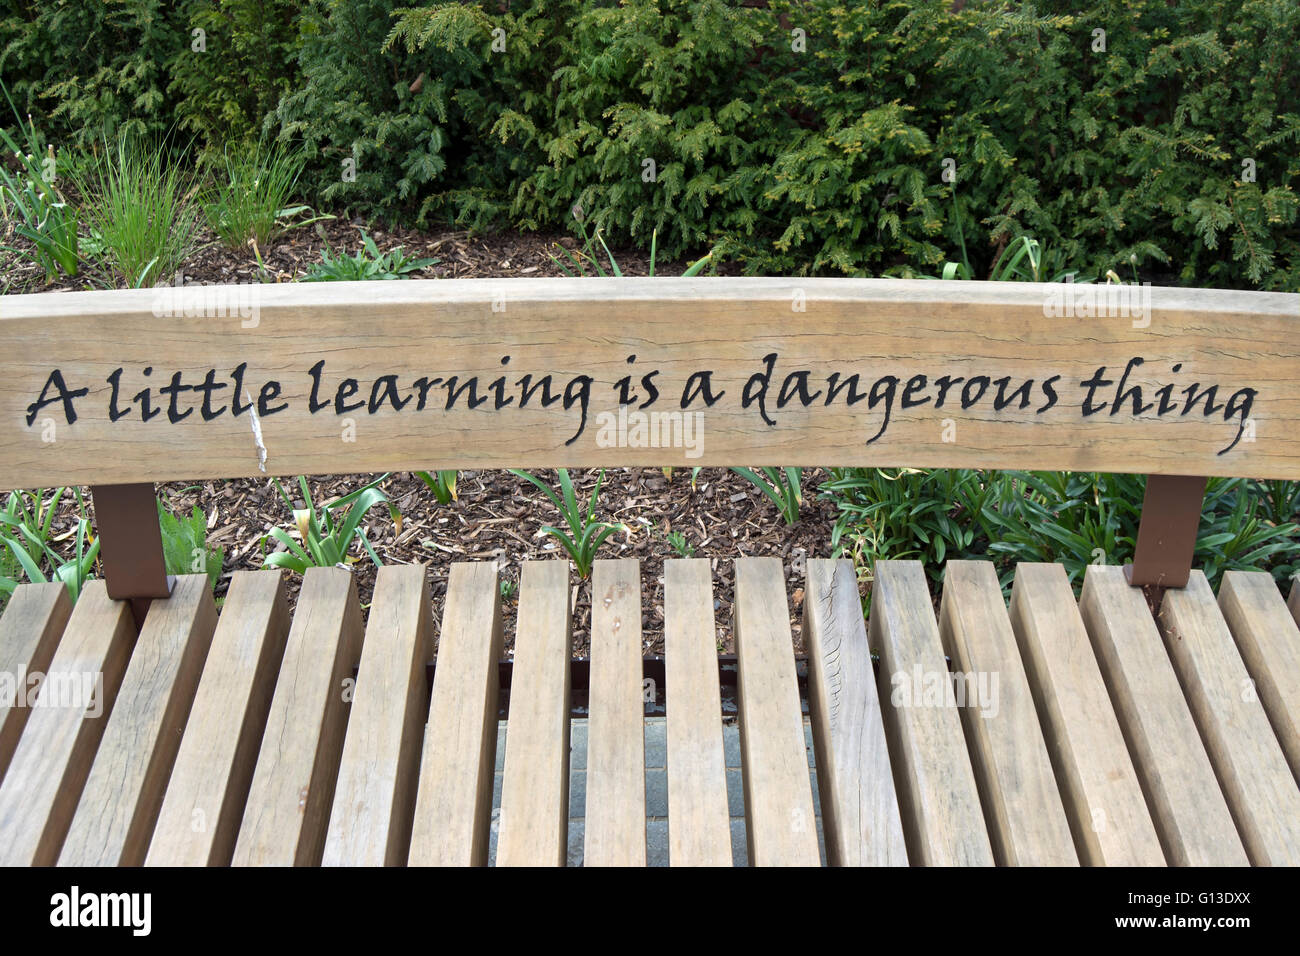 A Little Learning Is A Dangerous Thing Stock Photos & A Little ...